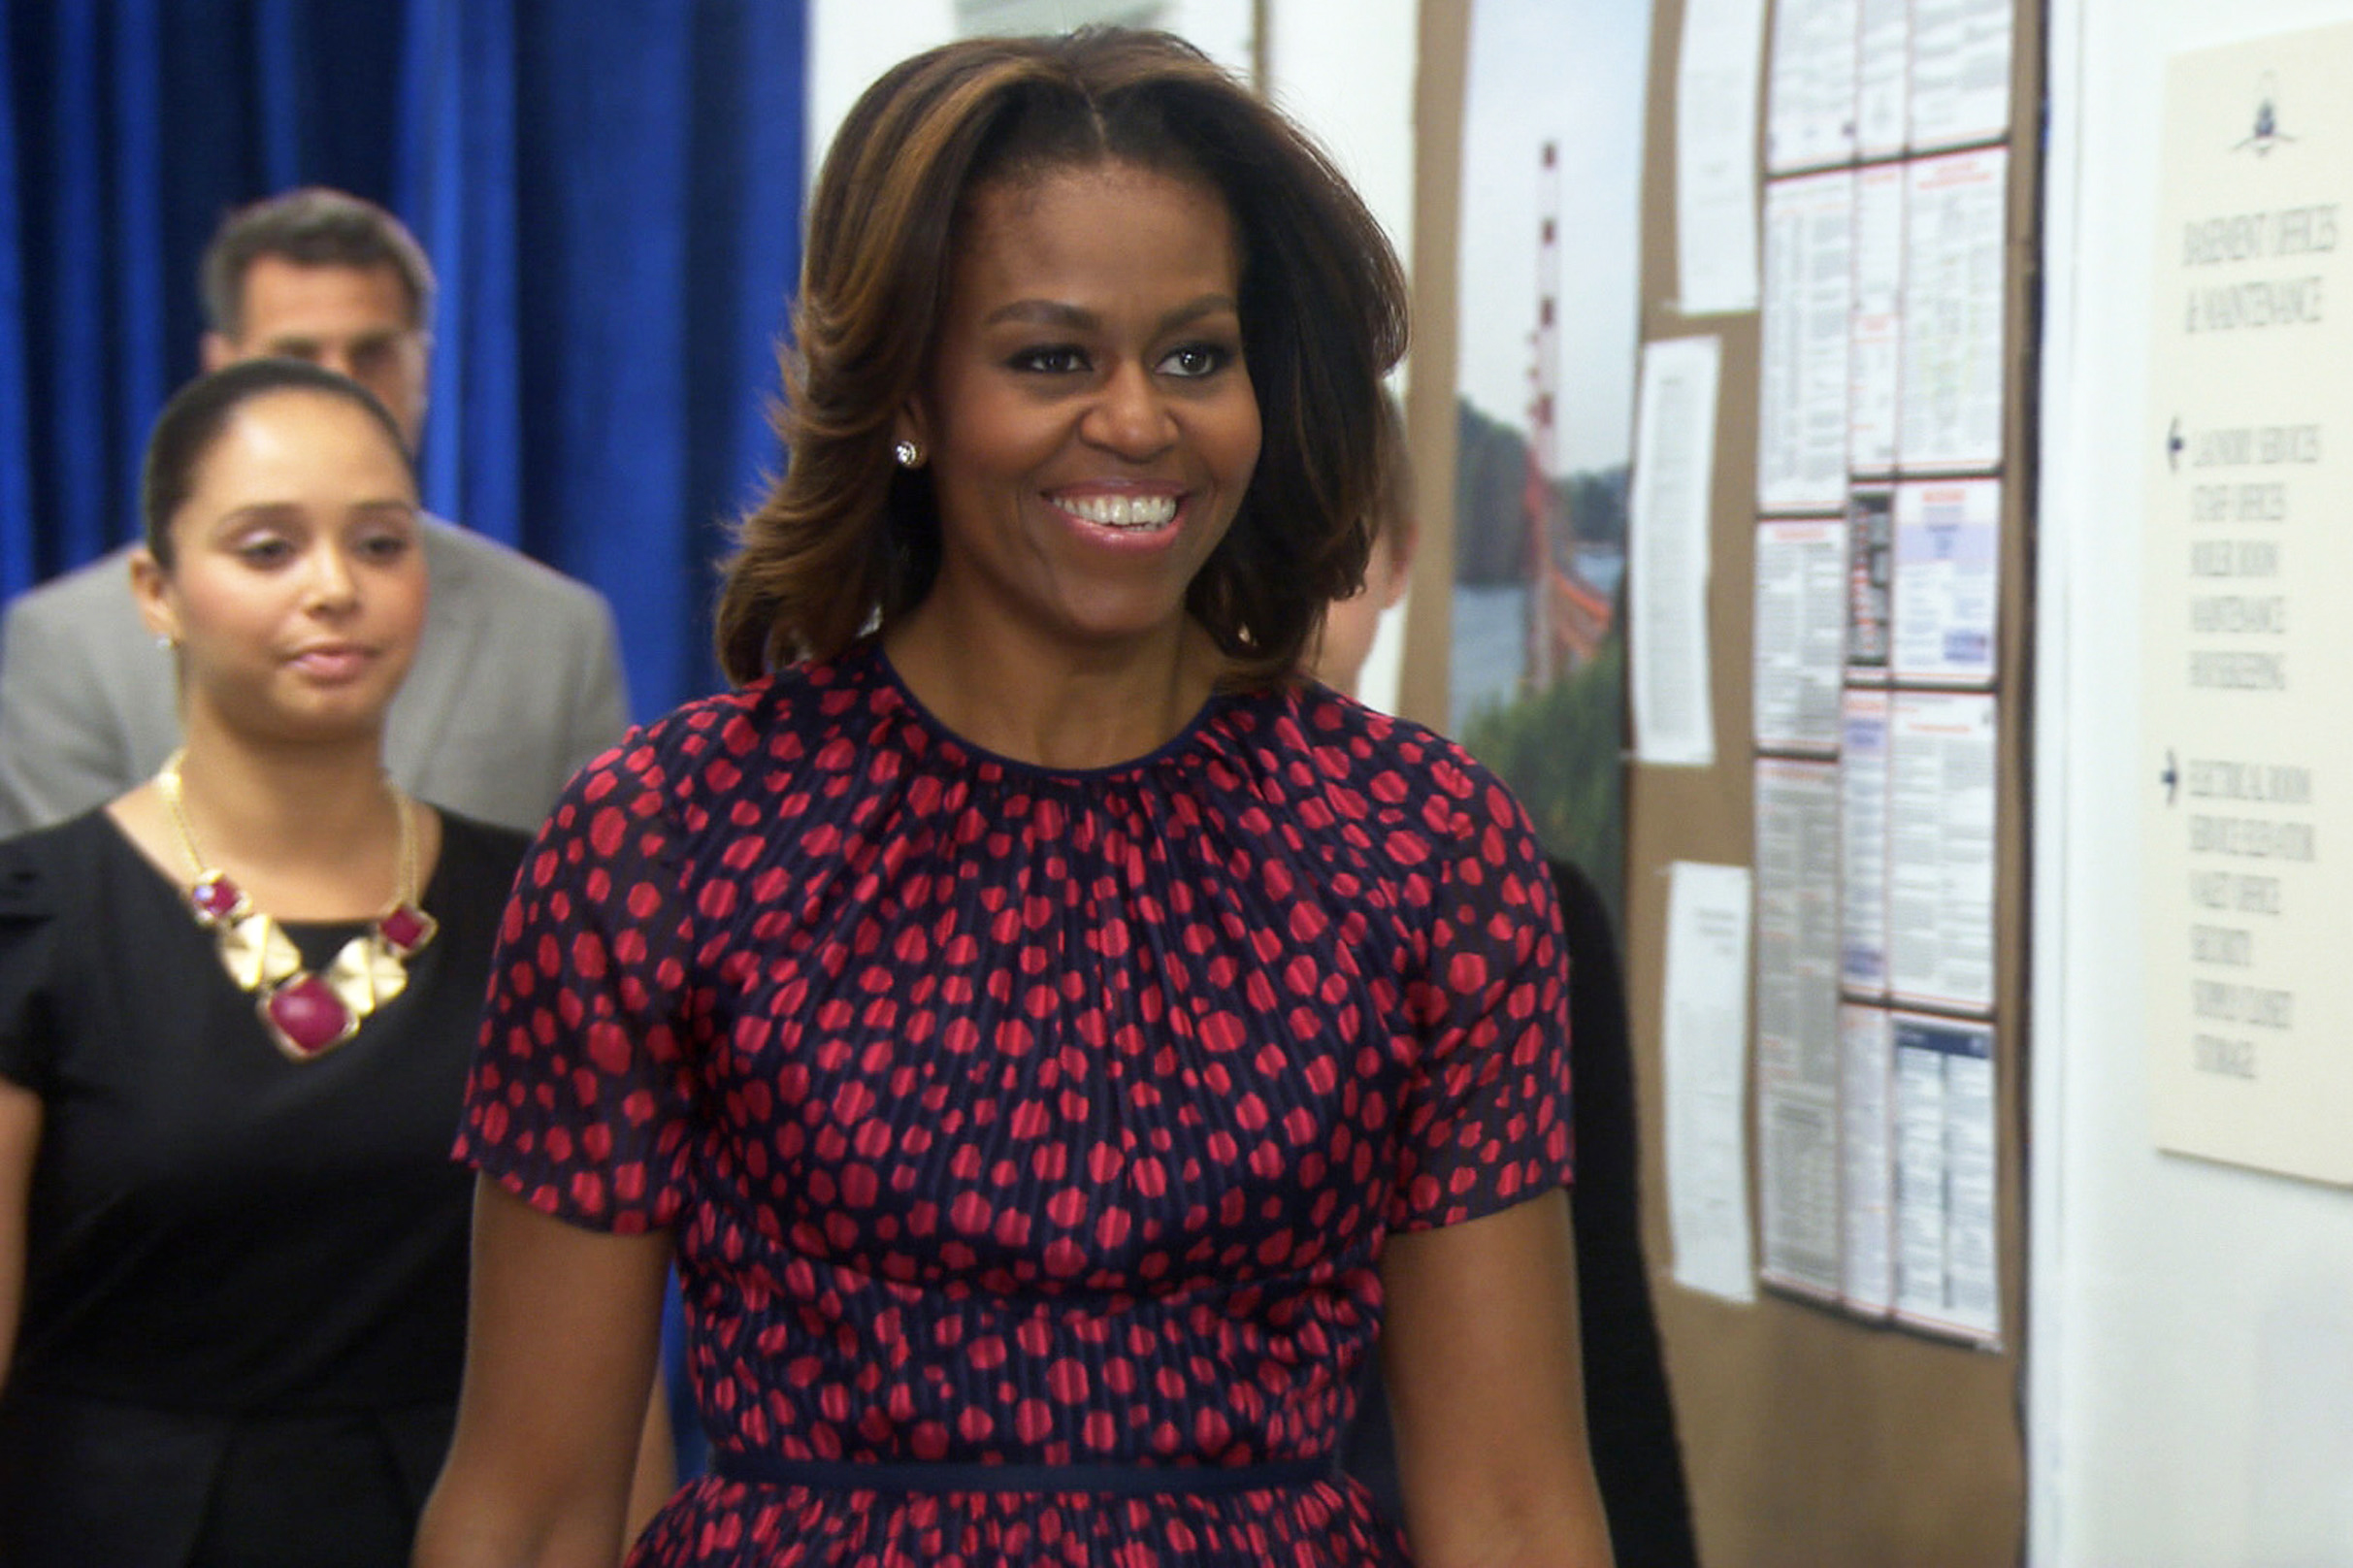 First lady Michelle Obama on Parks and Recreation, 2014.